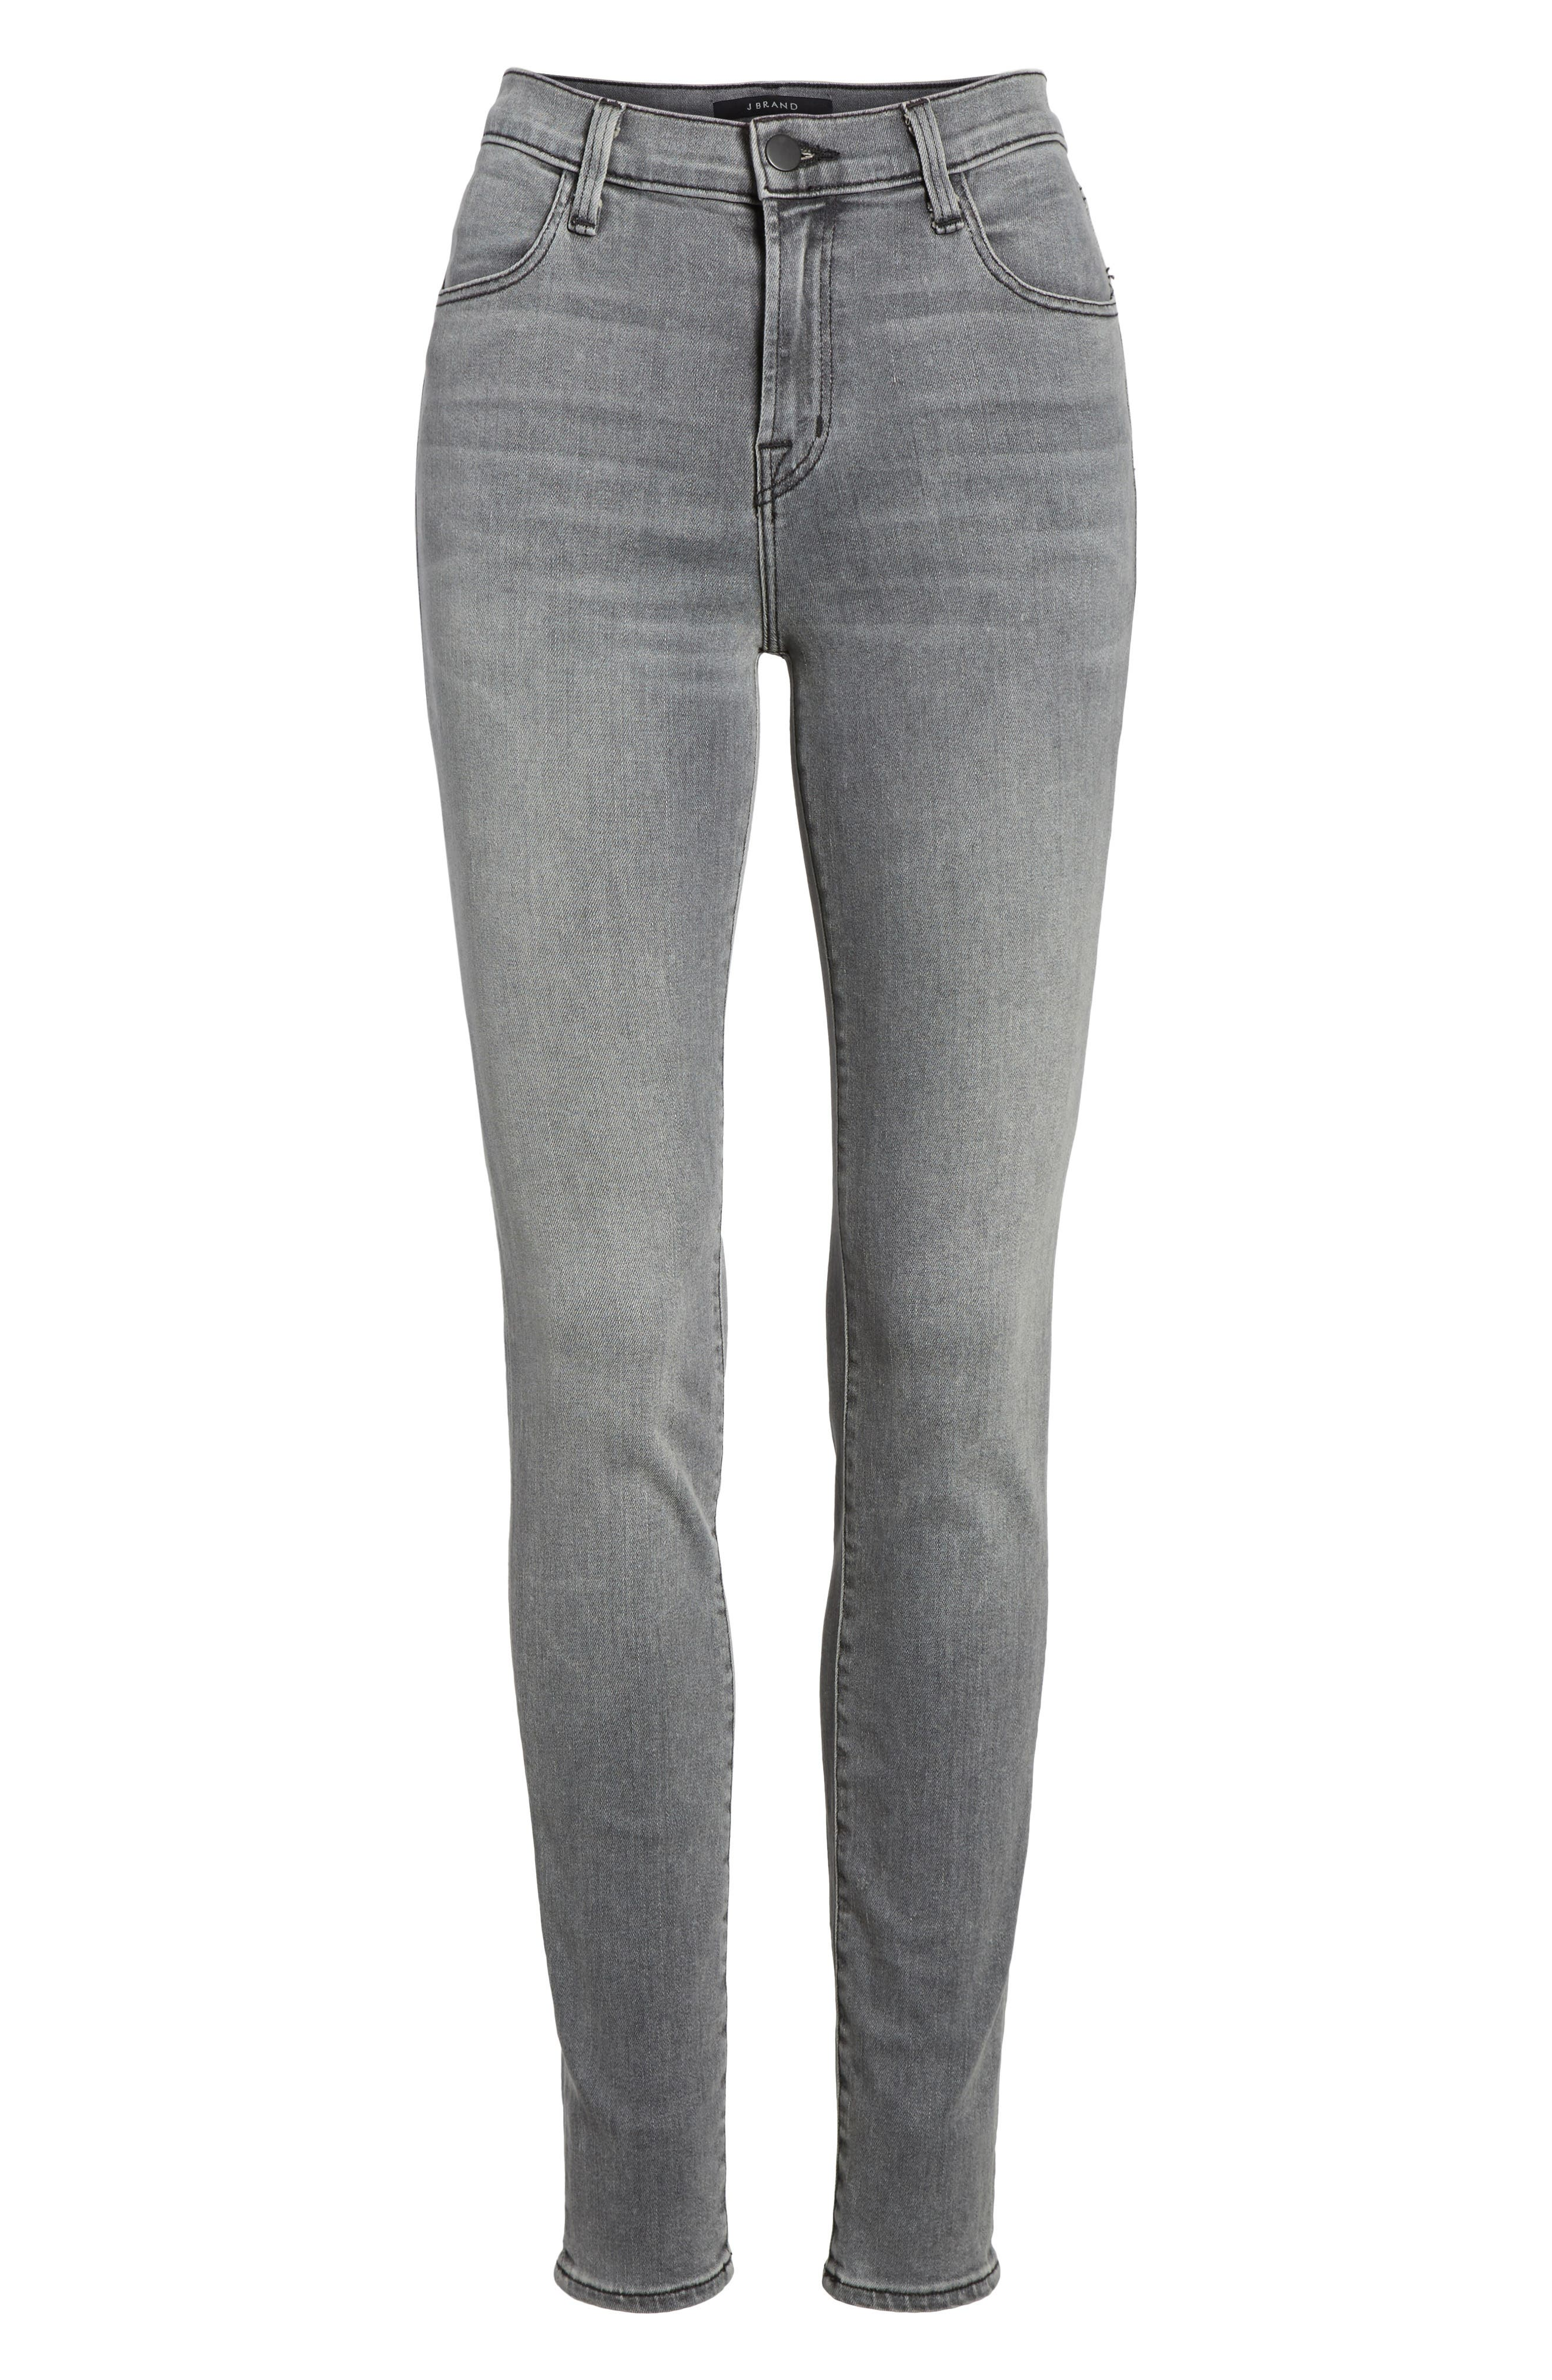 Maria High Waist Skinny Jeans,                             Alternate thumbnail 7, color,                             PEBBLE